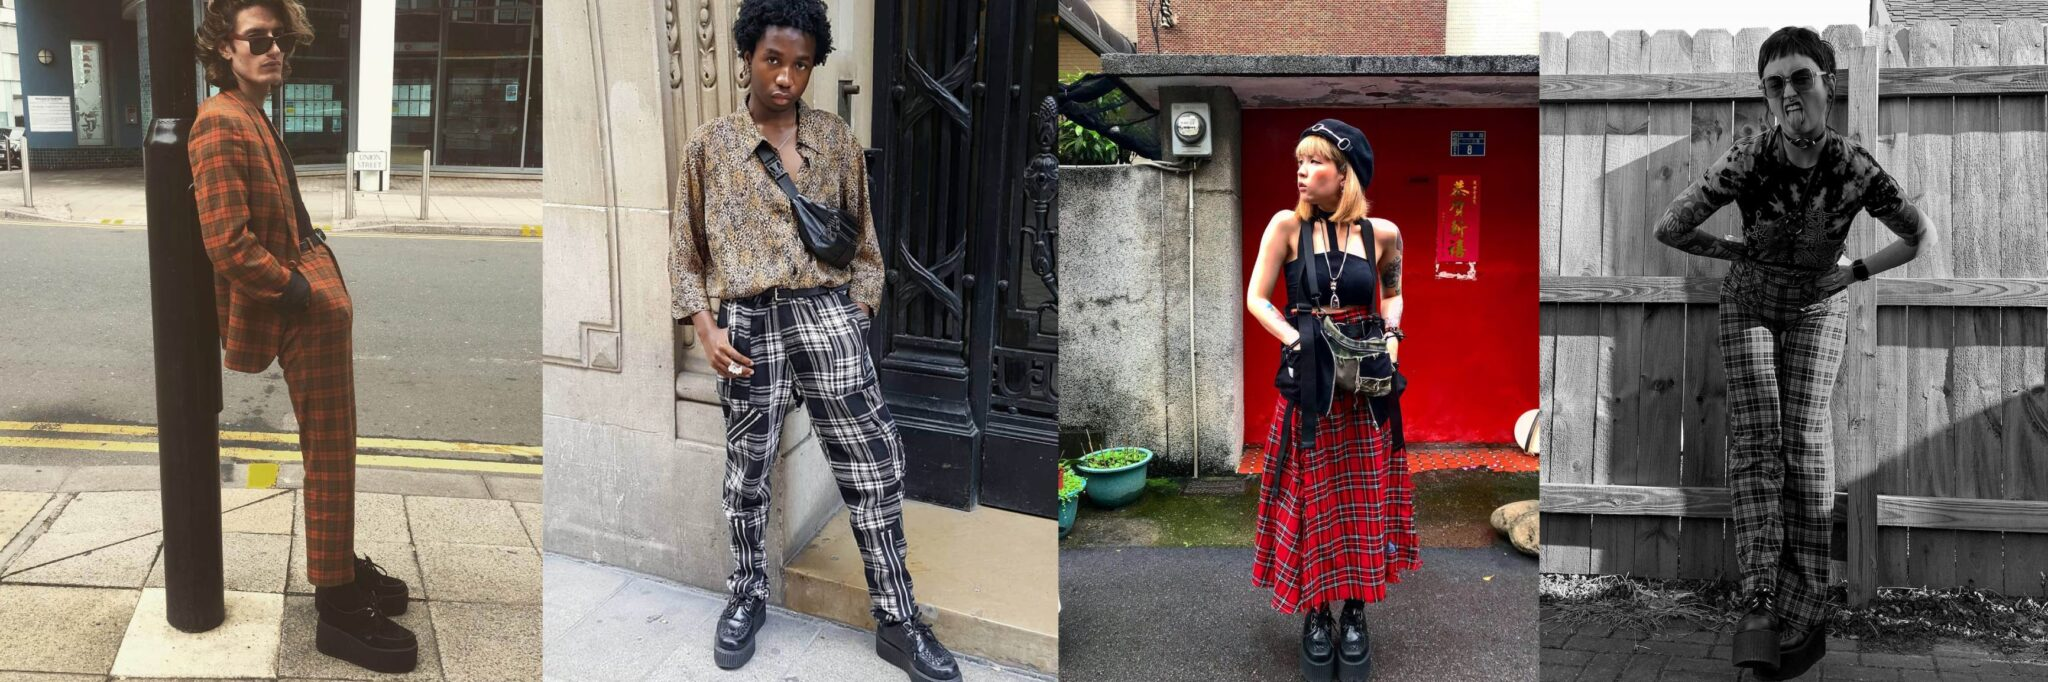 Tartan - How To Style Creepers - Underground blog